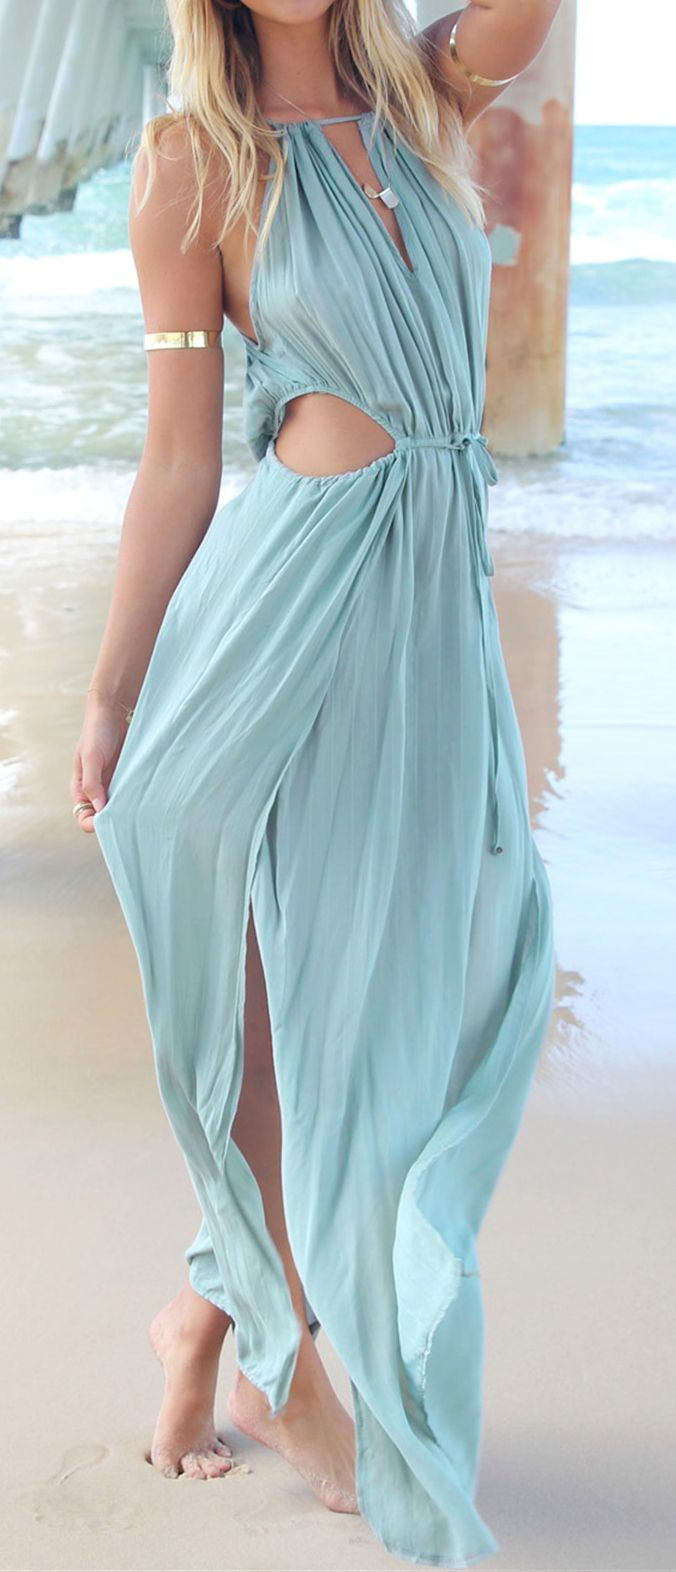 Mermaid maxi dresses in boho style. For more follow www.pinterest.com/ninayay and stay positively #inspired